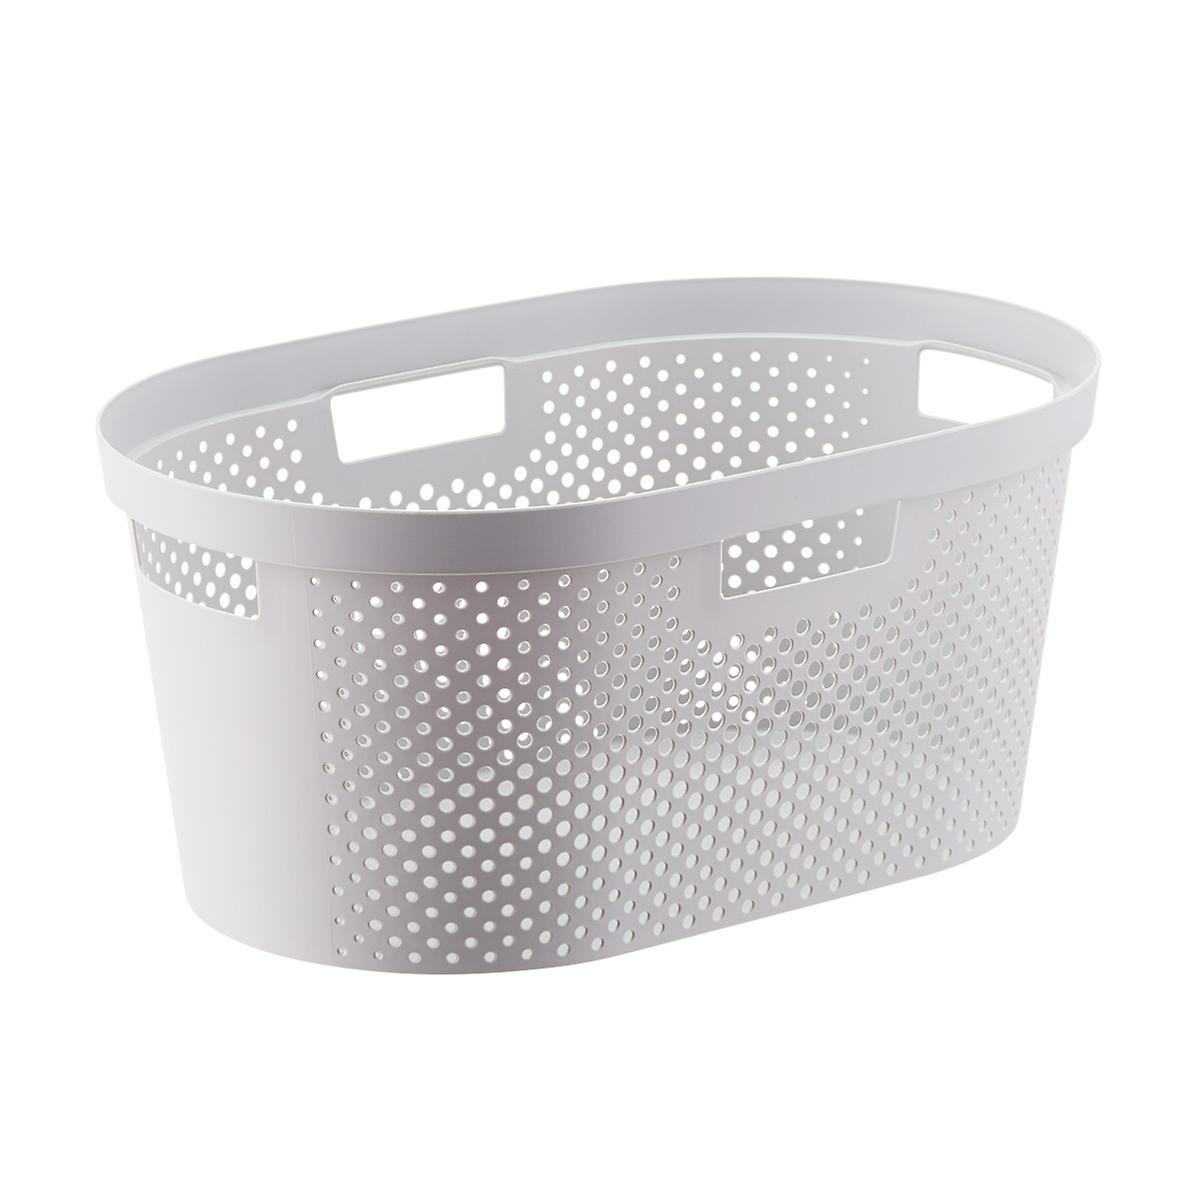 Infinity Laundry Basket The Container Store